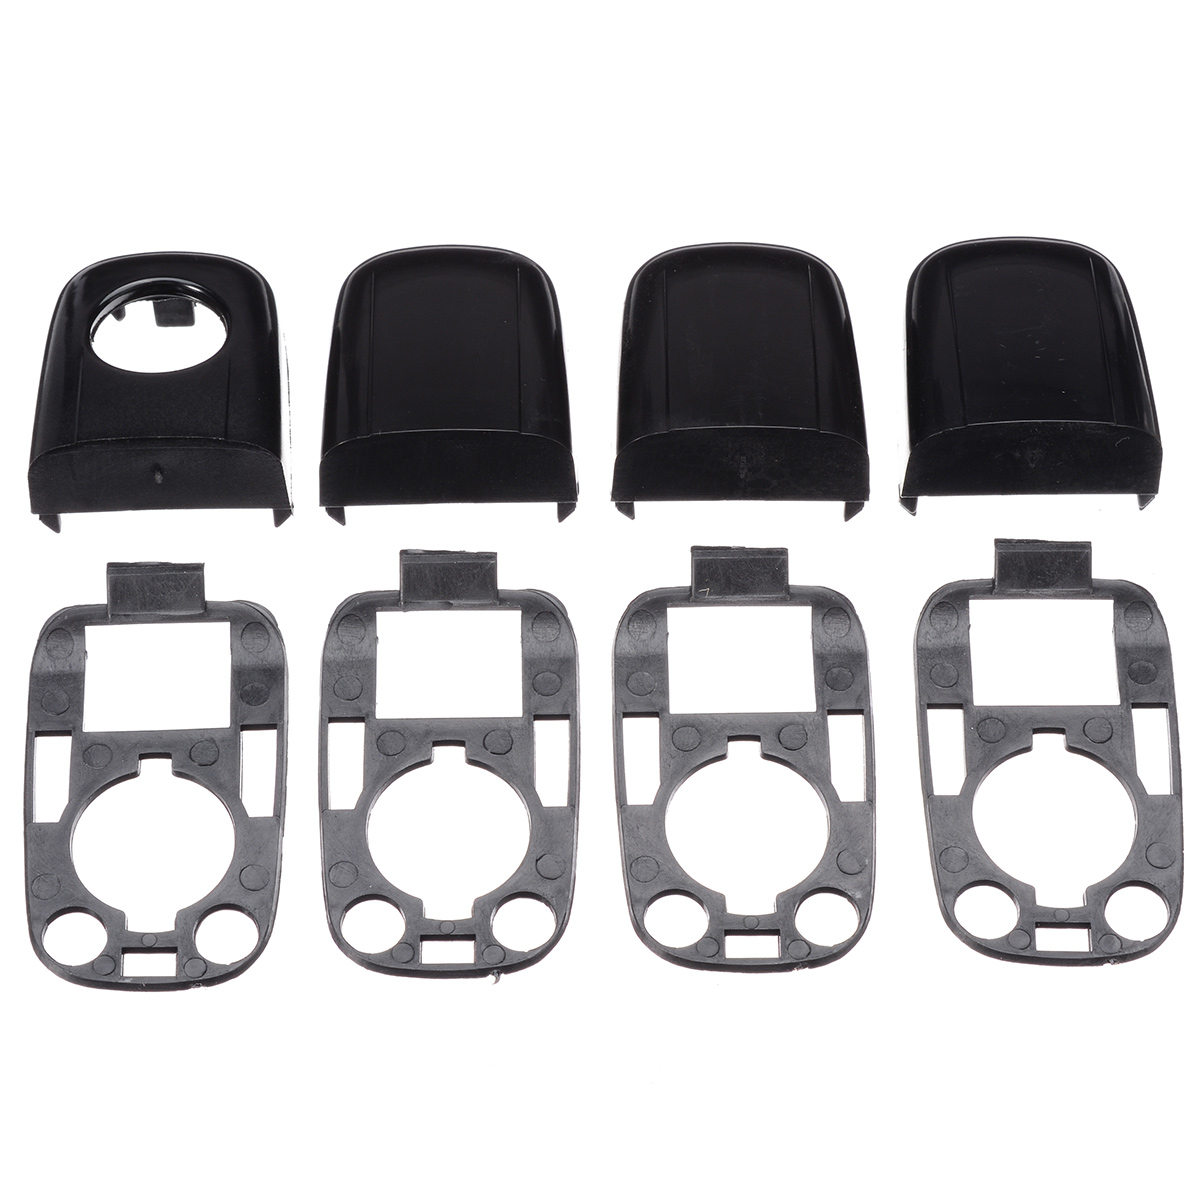 8pcs/set ABS <font><b>Door</b></font> <font><b>Handle</b></font> End Cap Cover For <font><b>Peugeot</b></font> 307 For Citroen C2 C3 <font><b>Door</b></font> <font><b>Handle</b></font> Kit image